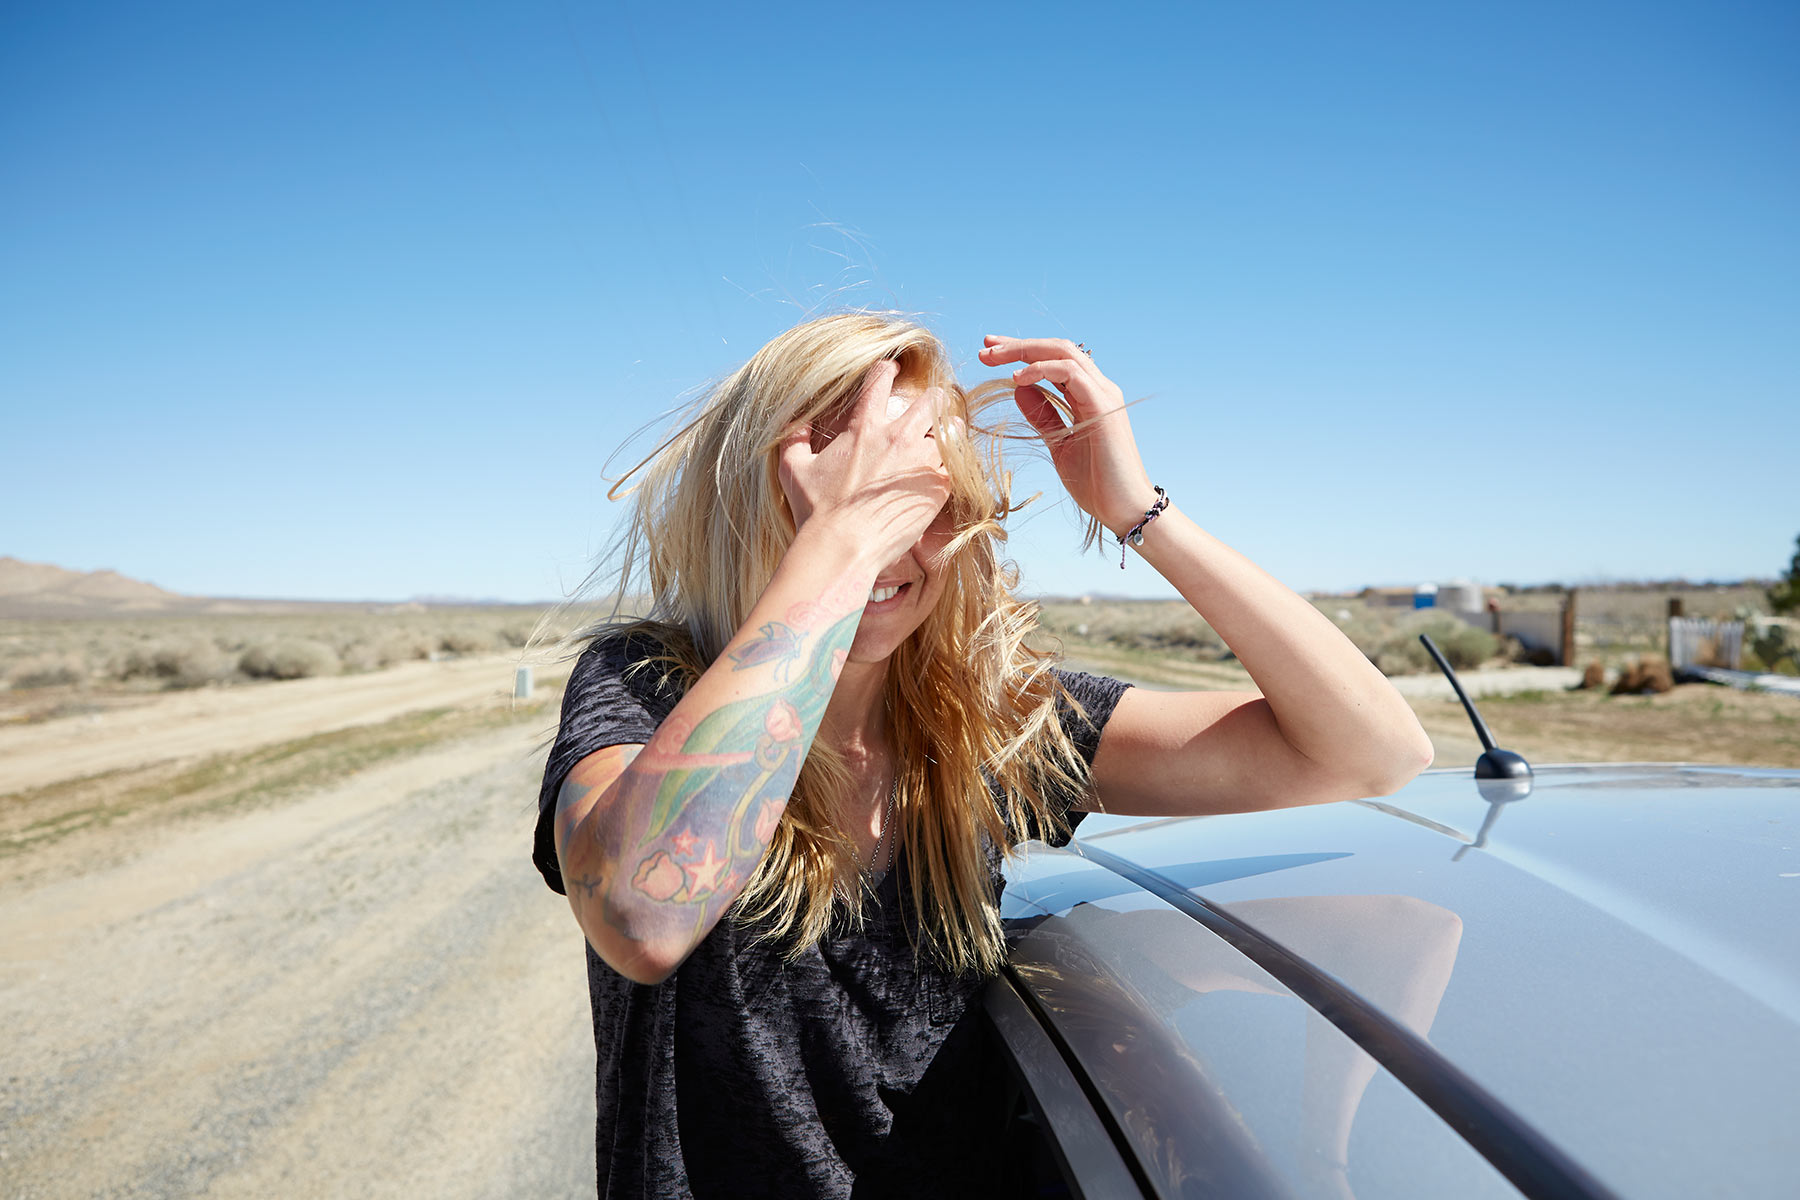 Desert_Lifestyle_Advertising_Photographer_LA_Los_Angeles_Chicago_Advertising_Commercial_Photographer_Woman_Girl_Youth_Culther_Out_Car_Window_Wind_in_Hair_Fun_Blowing_Mike_Henry